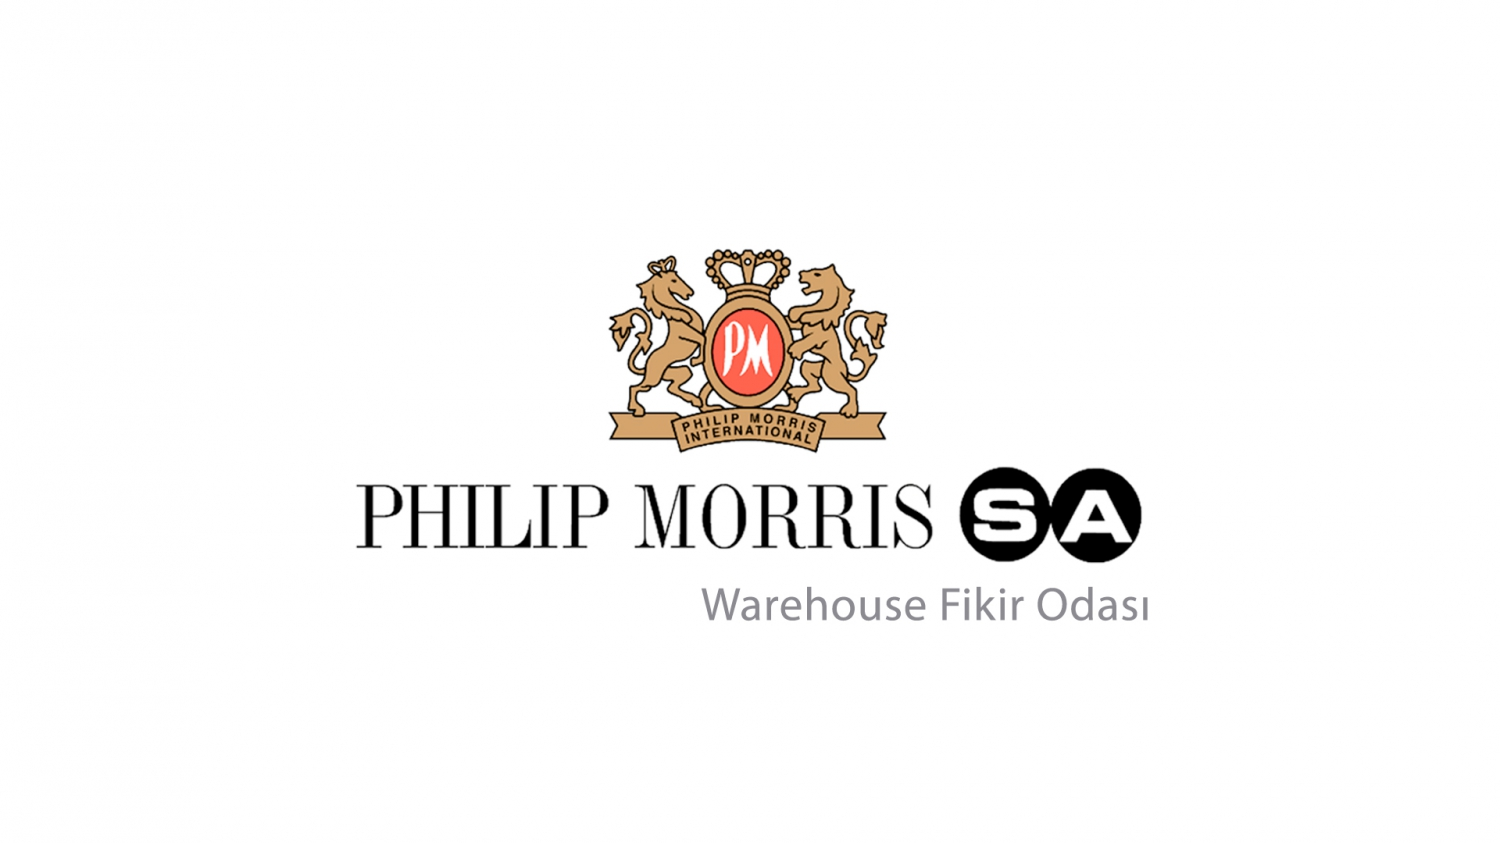 PHILIP MORRIS - WAREHOUSE FİKİR ODASI